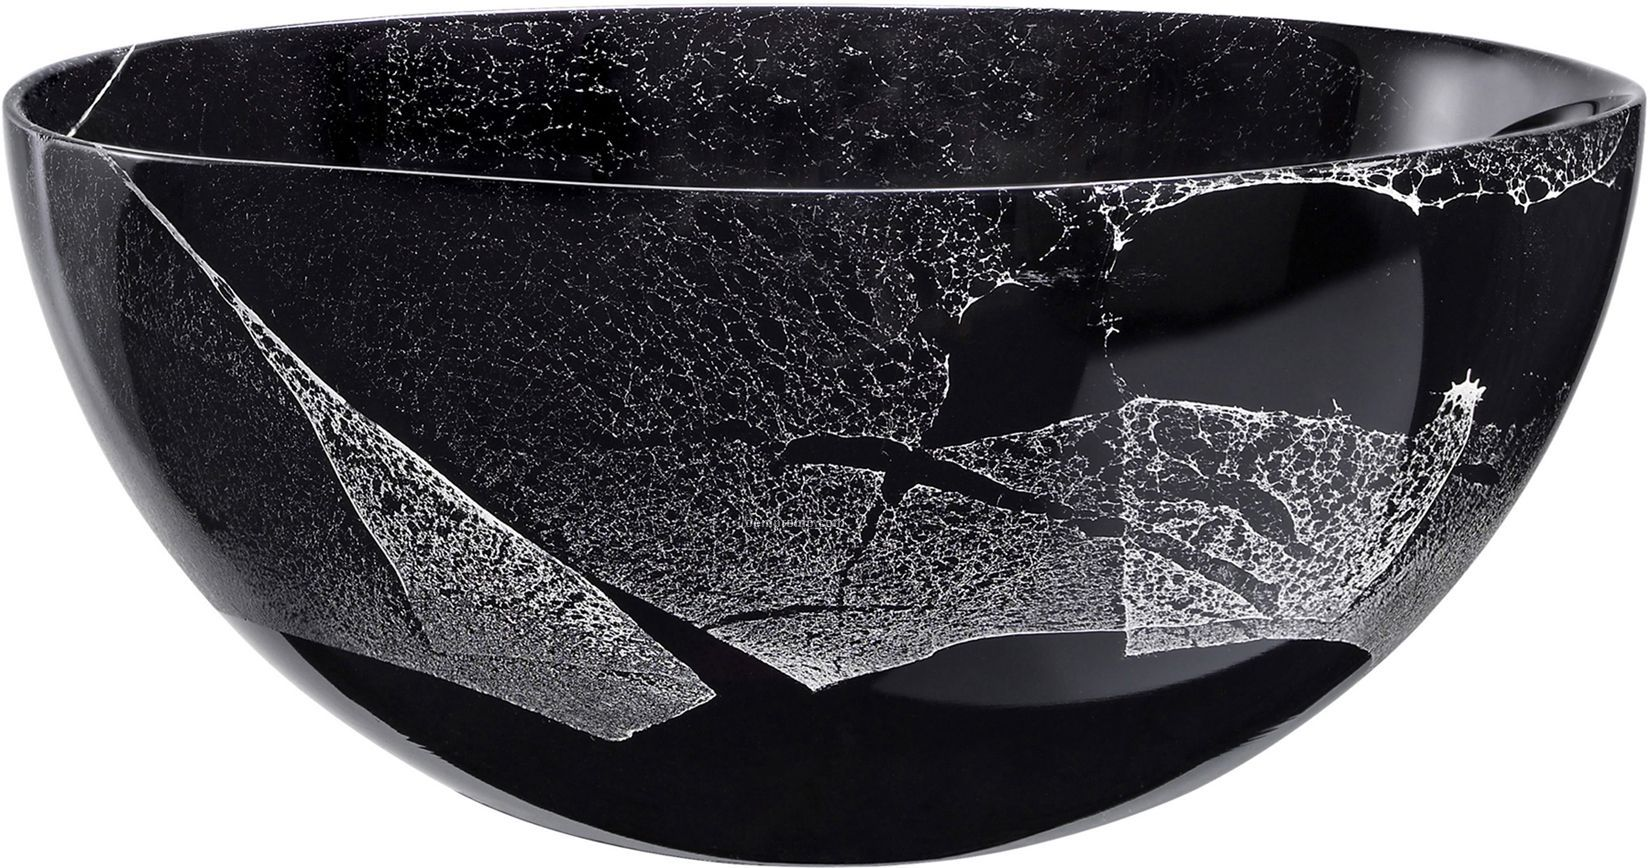 Milky Way Large Glass Bowl By Anna Ehrner China Wholesale Milky Way Large Glass Bowl By Anna Ehrner